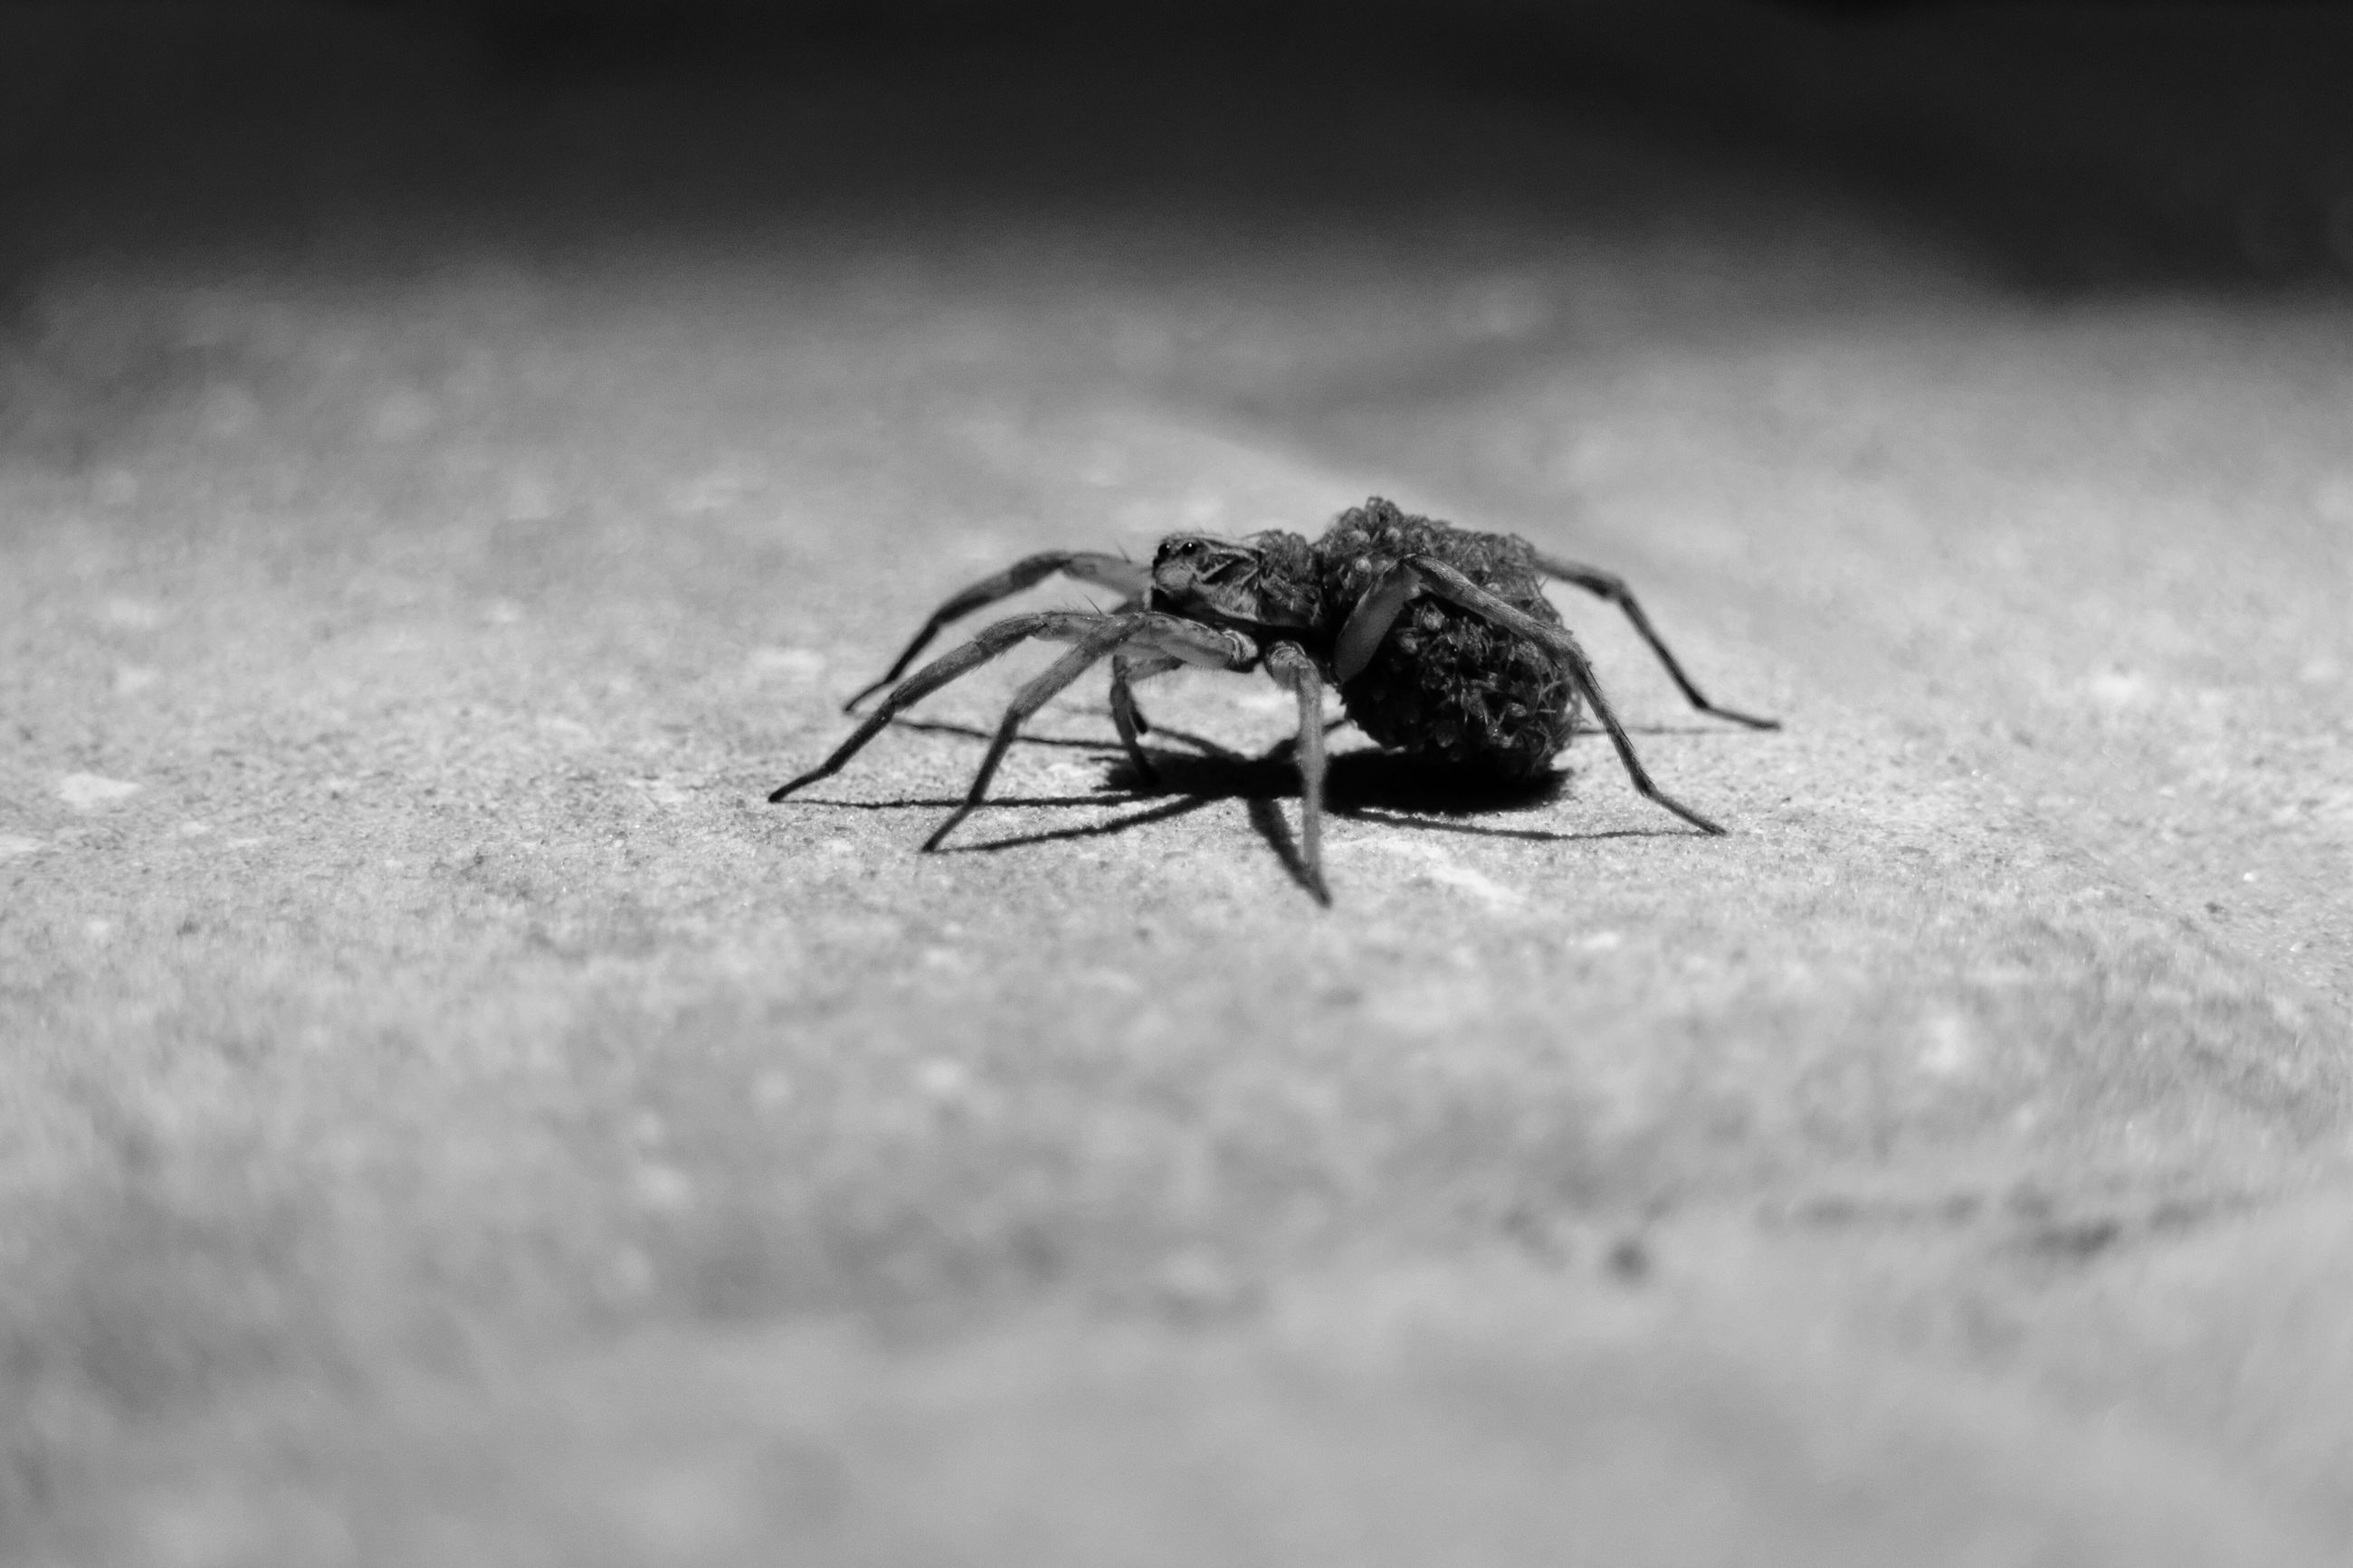 invertebrate, animal, animal themes, animal wildlife, animals in the wild, one animal, insect, selective focus, close-up, fly, no people, day, zoology, animal body part, animal wing, housefly, arthropod, outdoors, nature, surface level